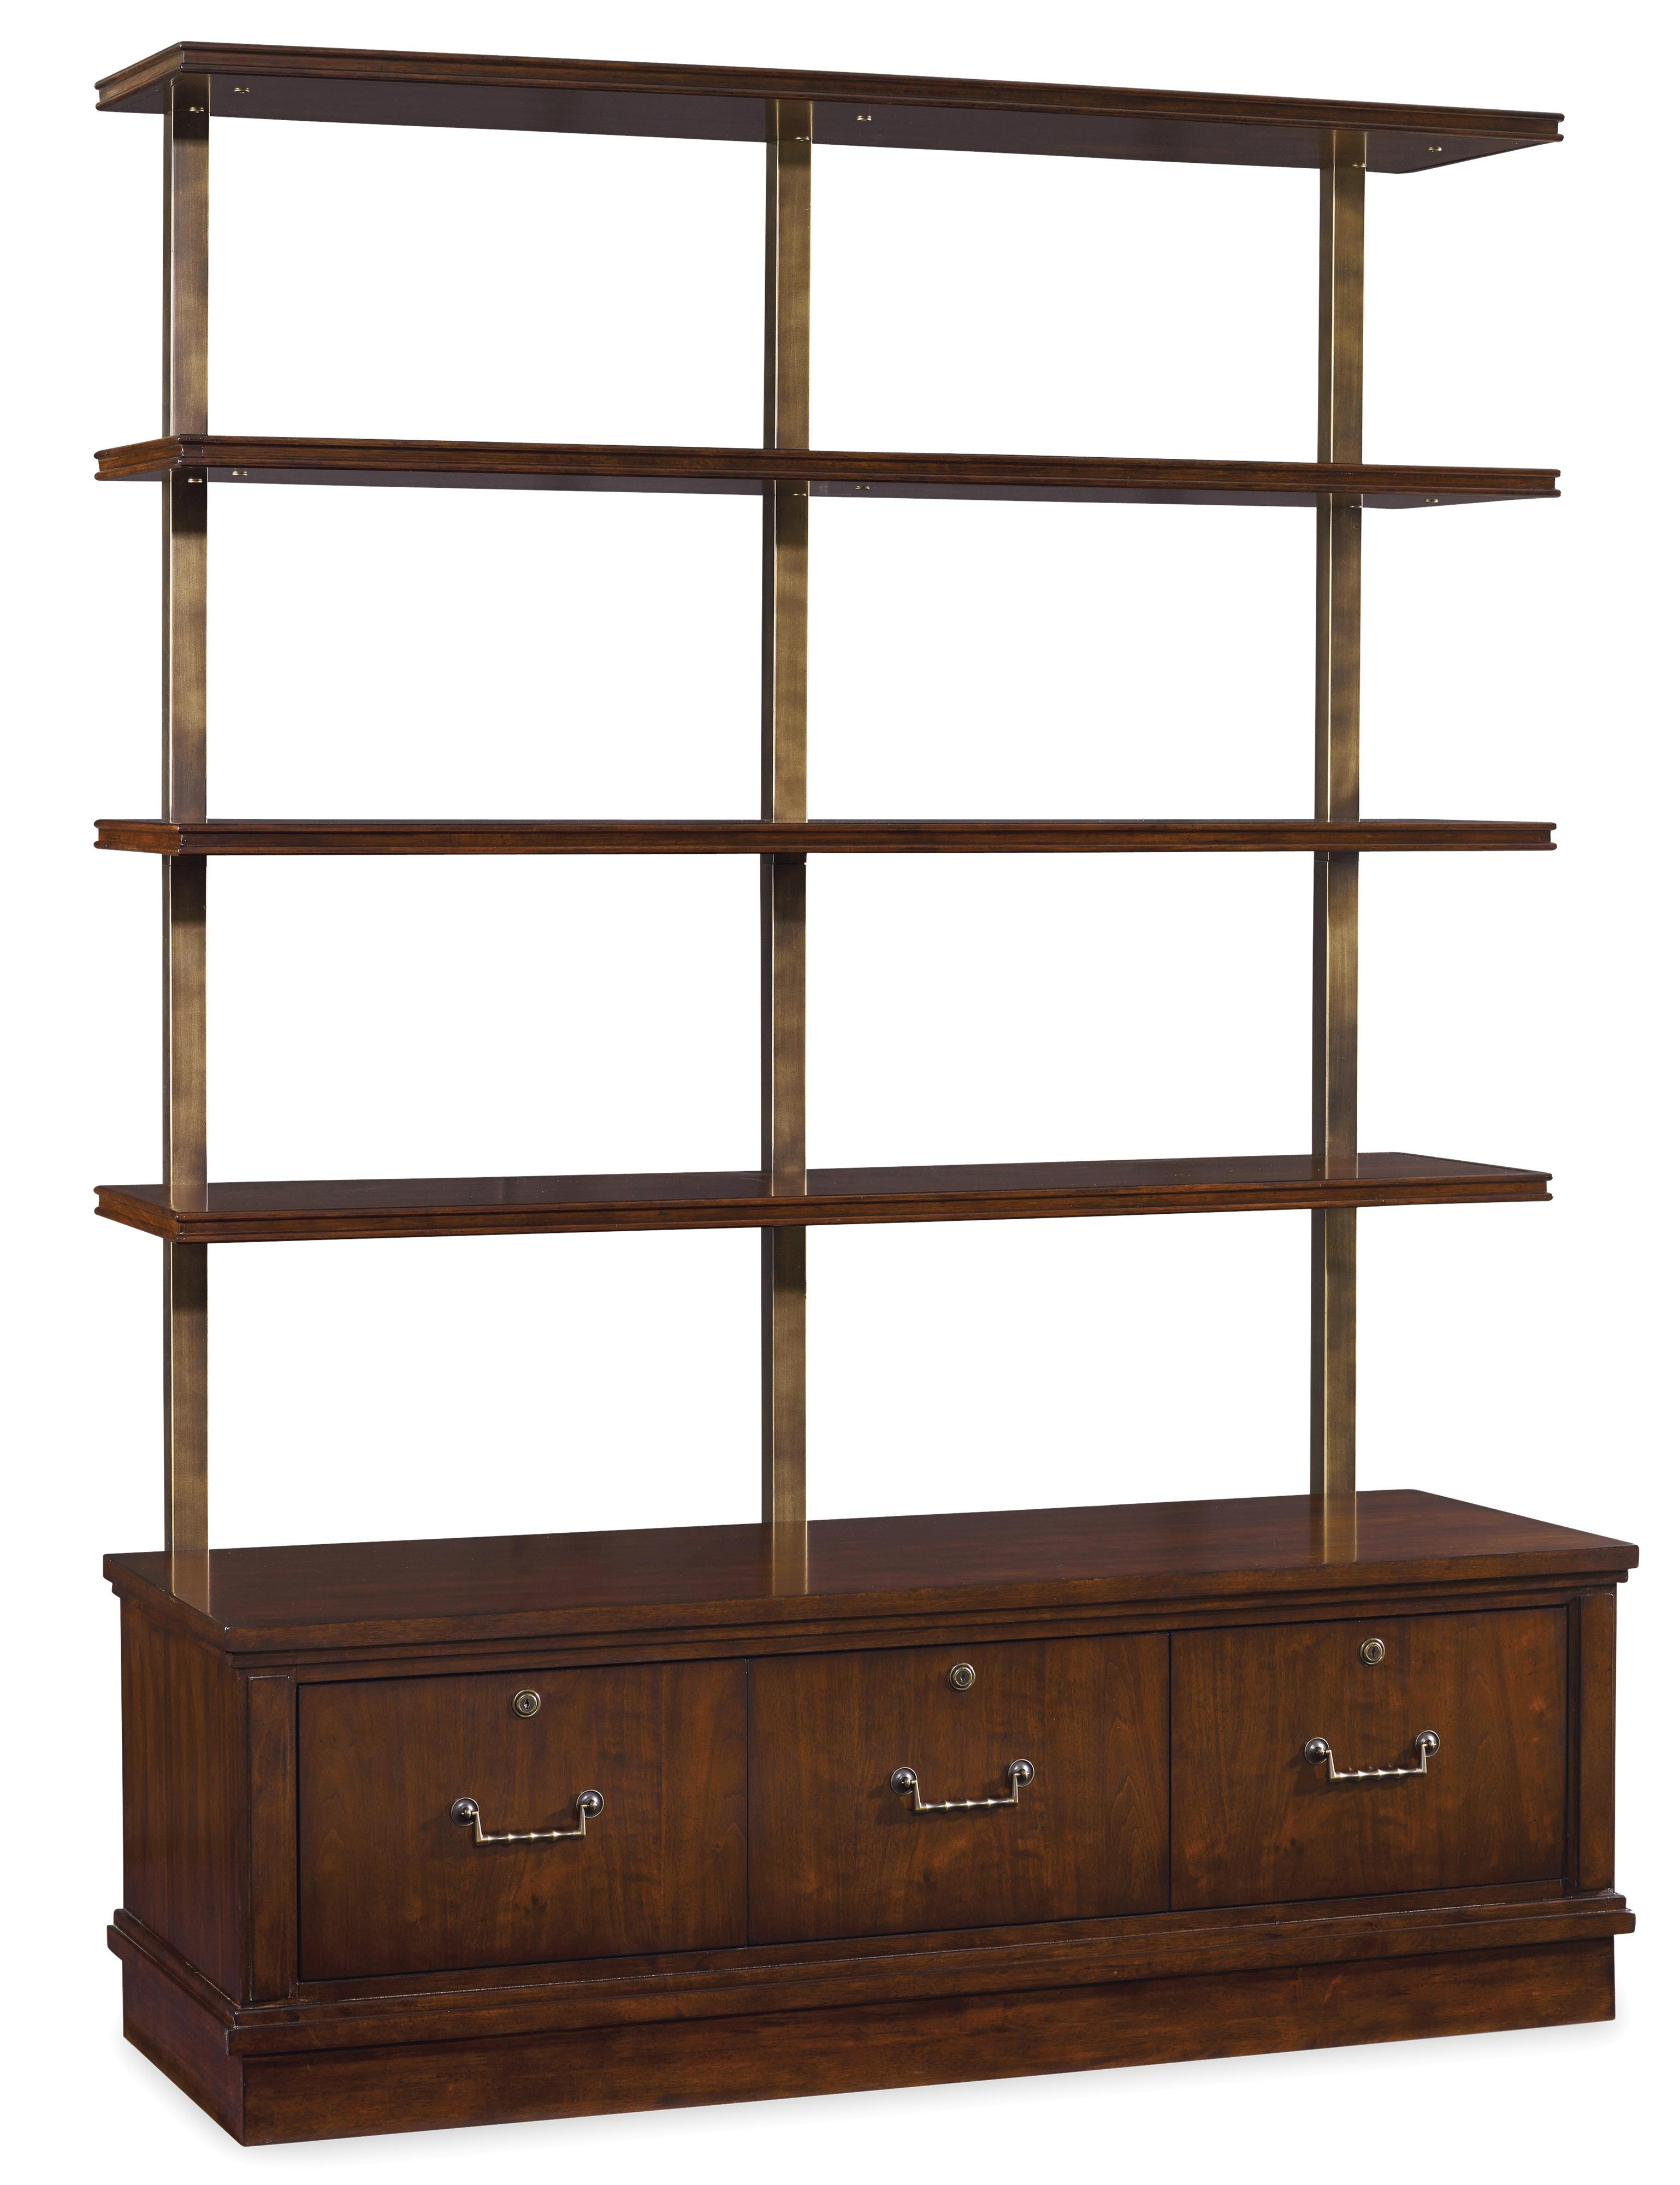 Hooker Furniture Palisade Bookcase - Item Number: 5183-10446